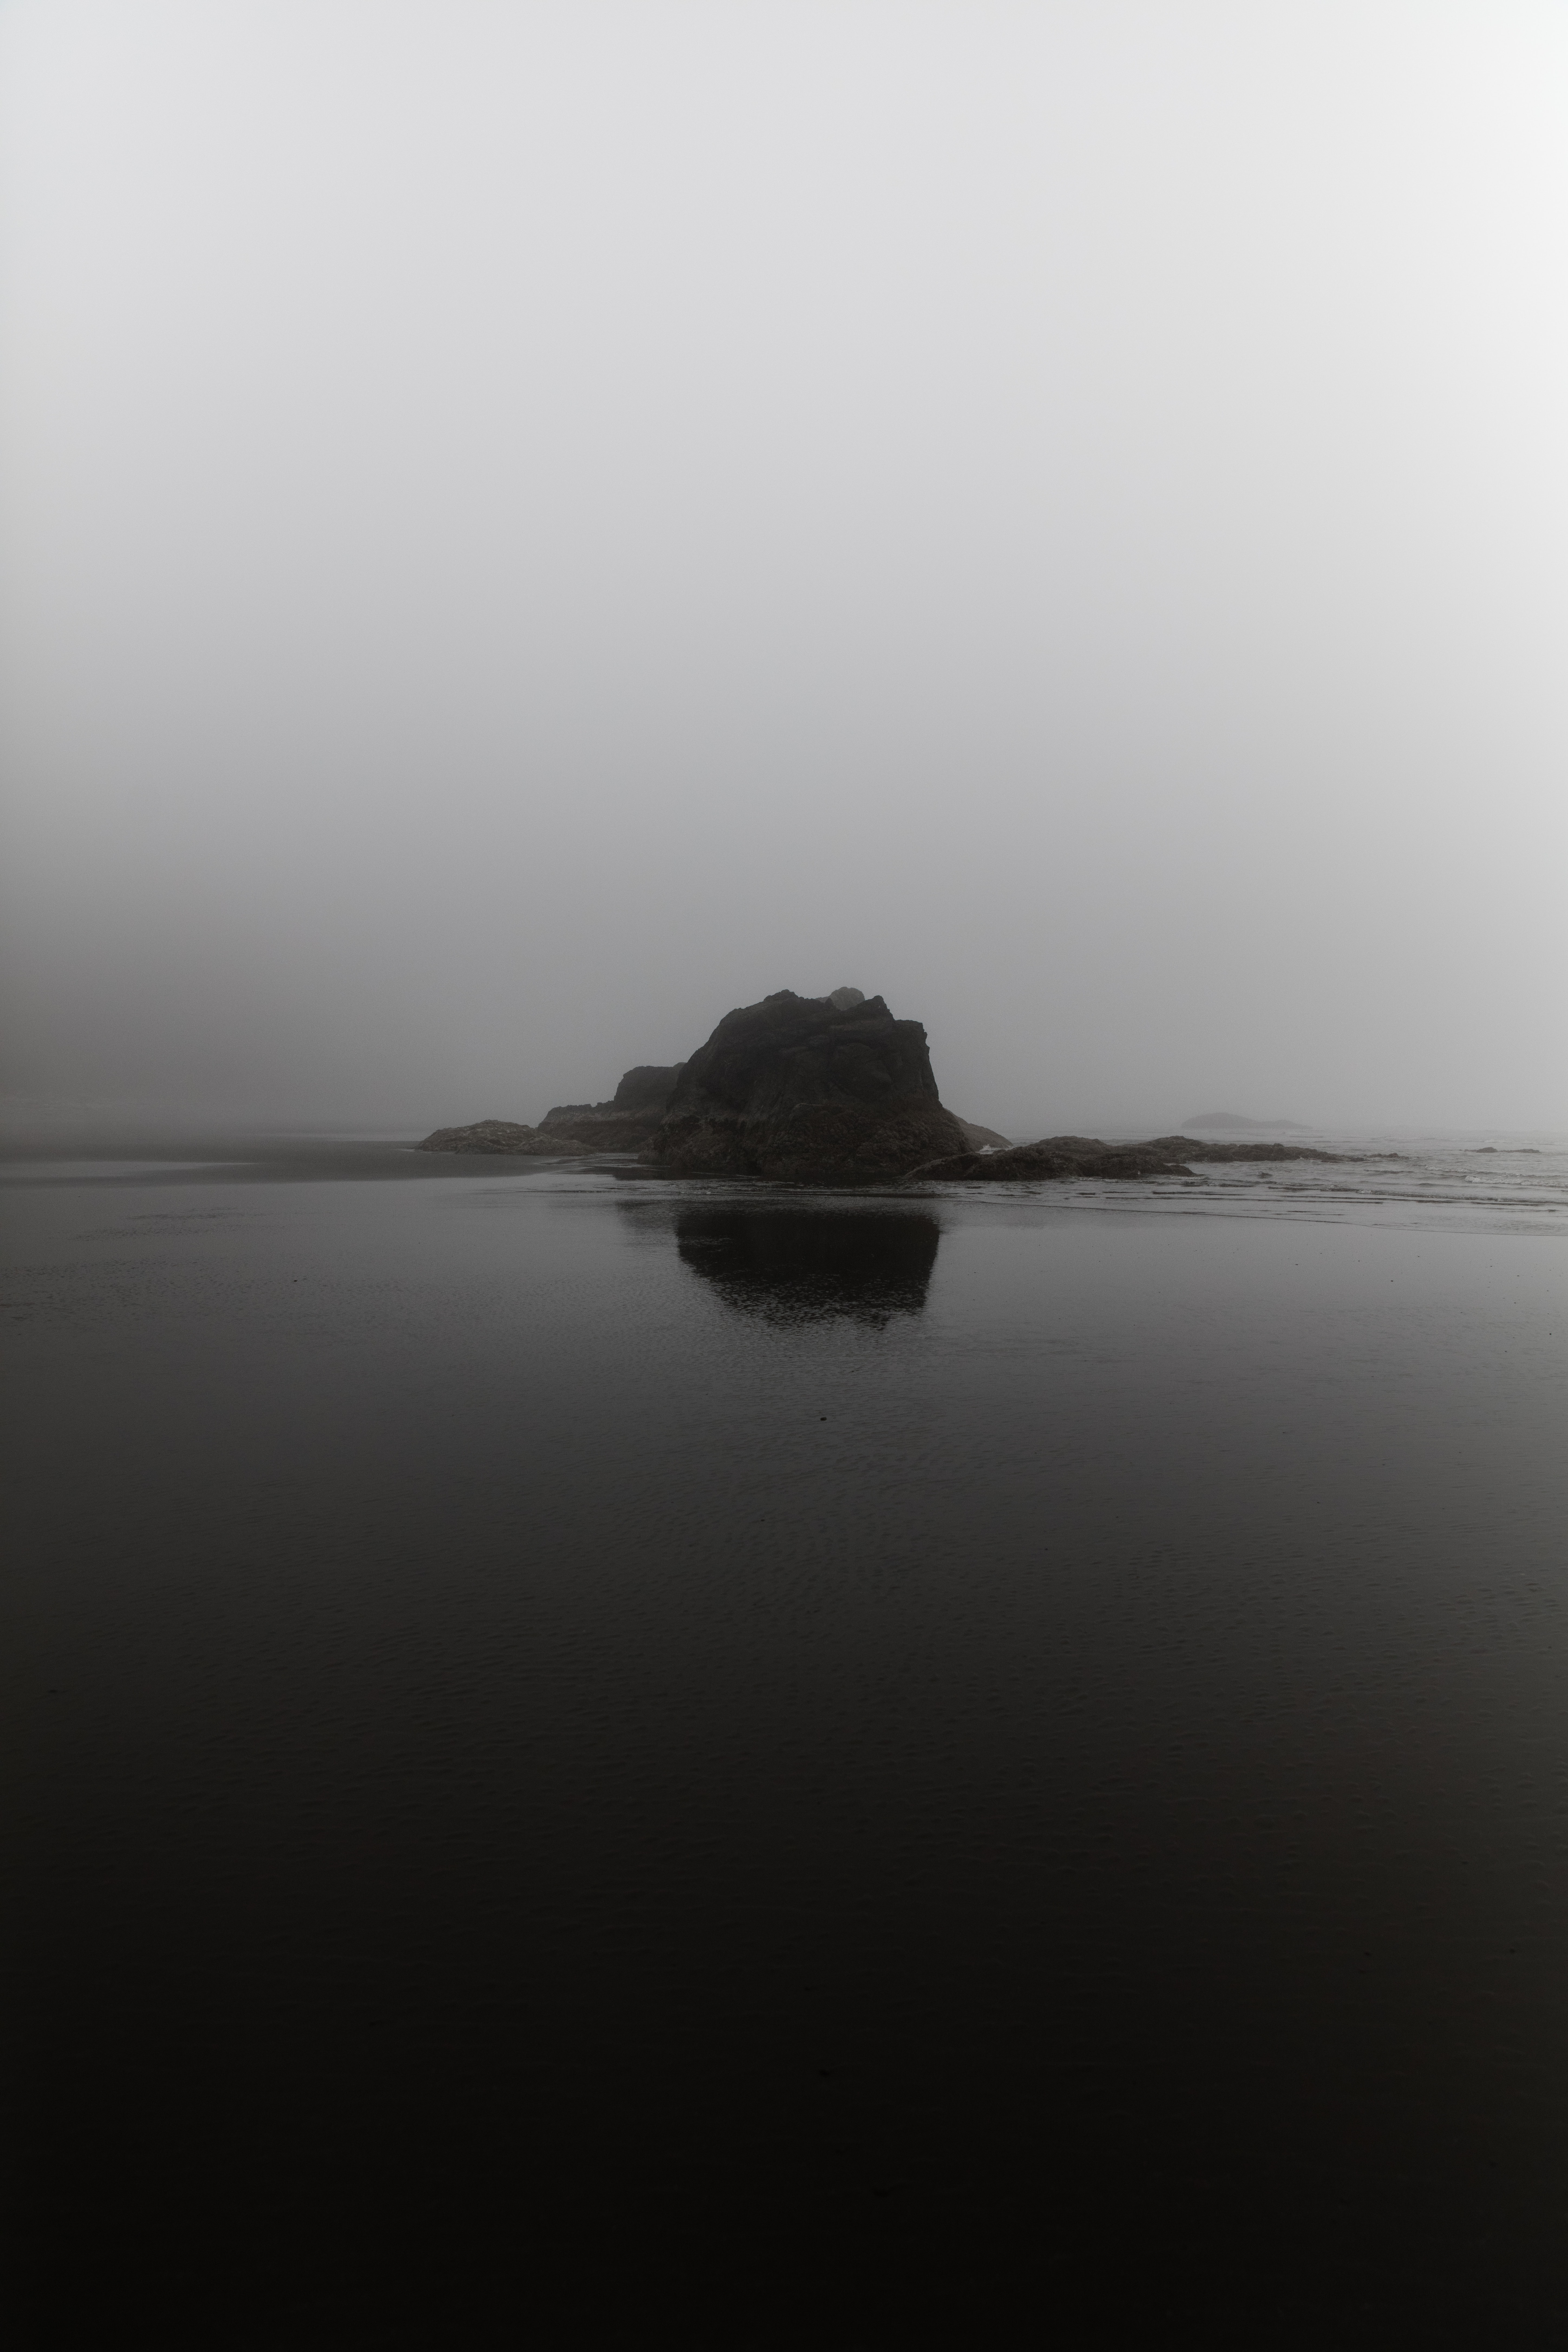 silhouette of rock formation in front of body of water